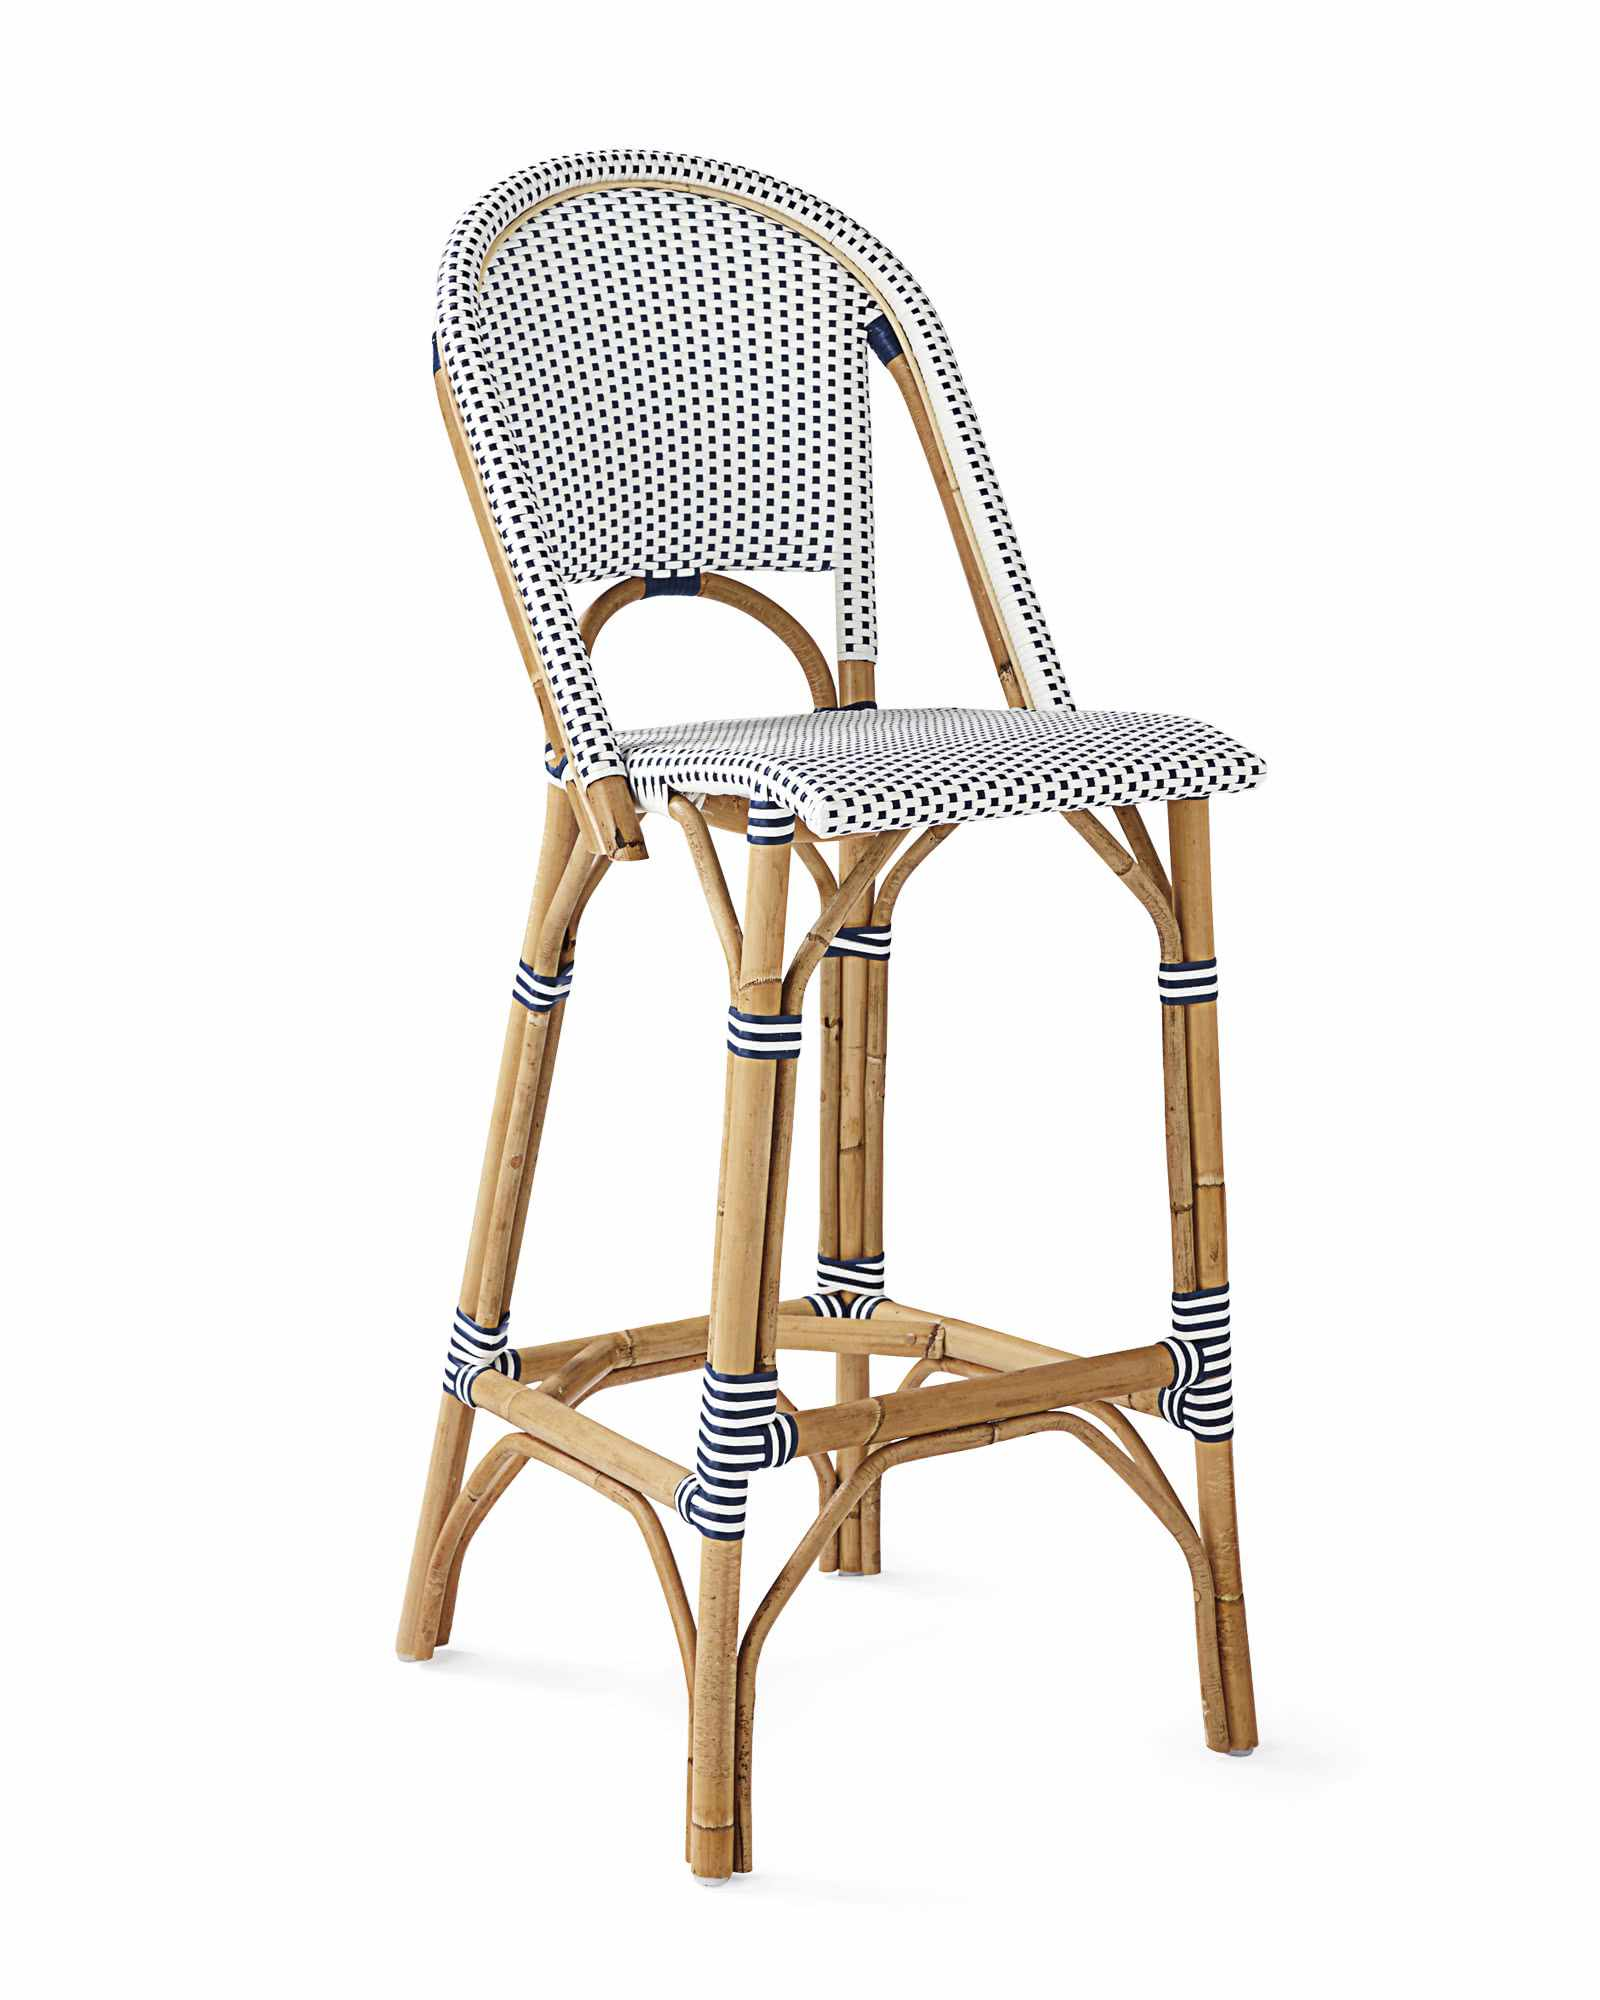 A blue and white wicker barstool